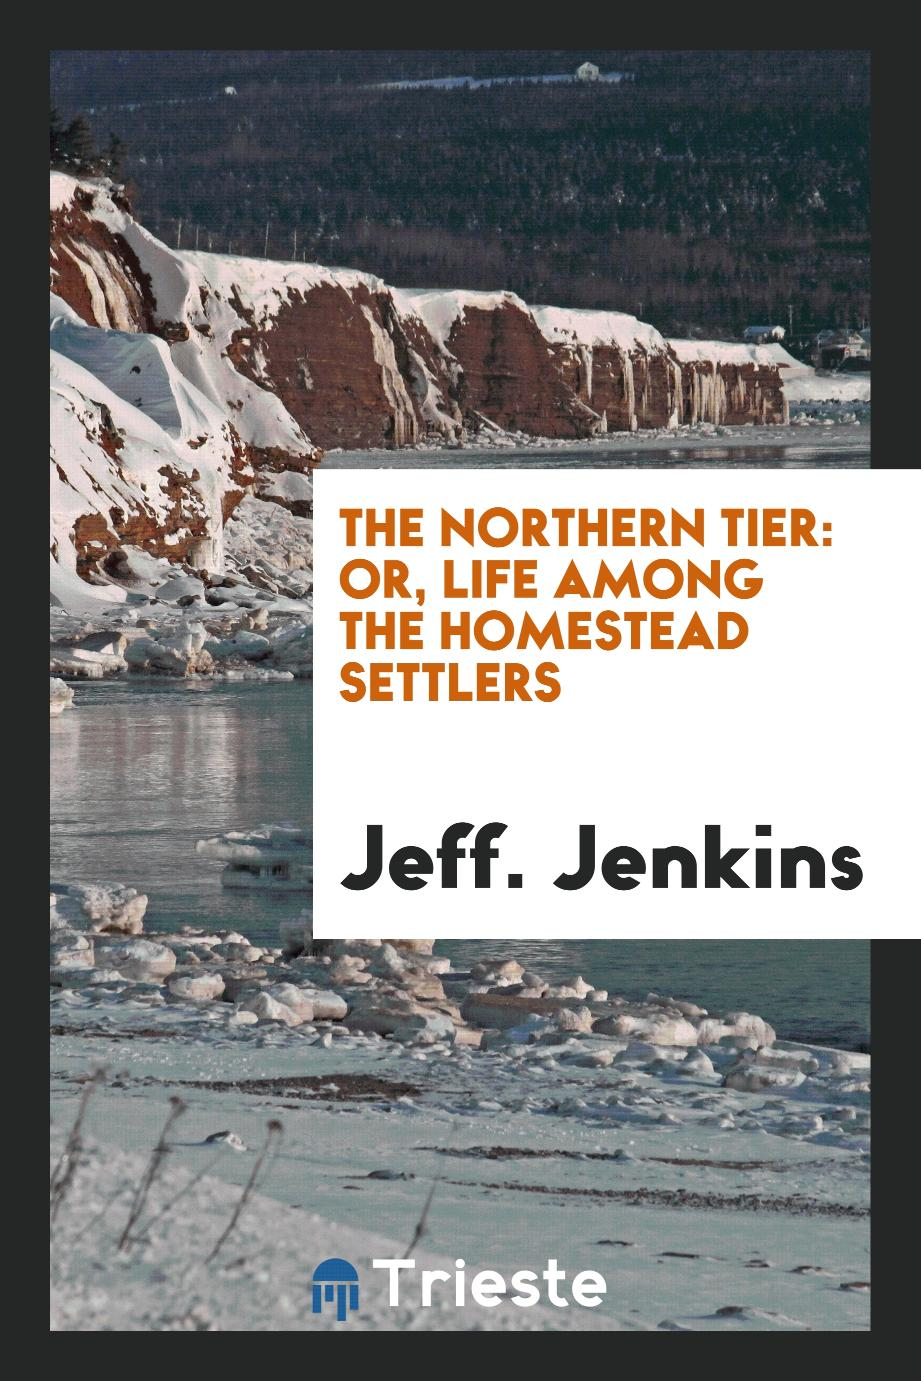 The northern tier: or, Life among the homestead settlers